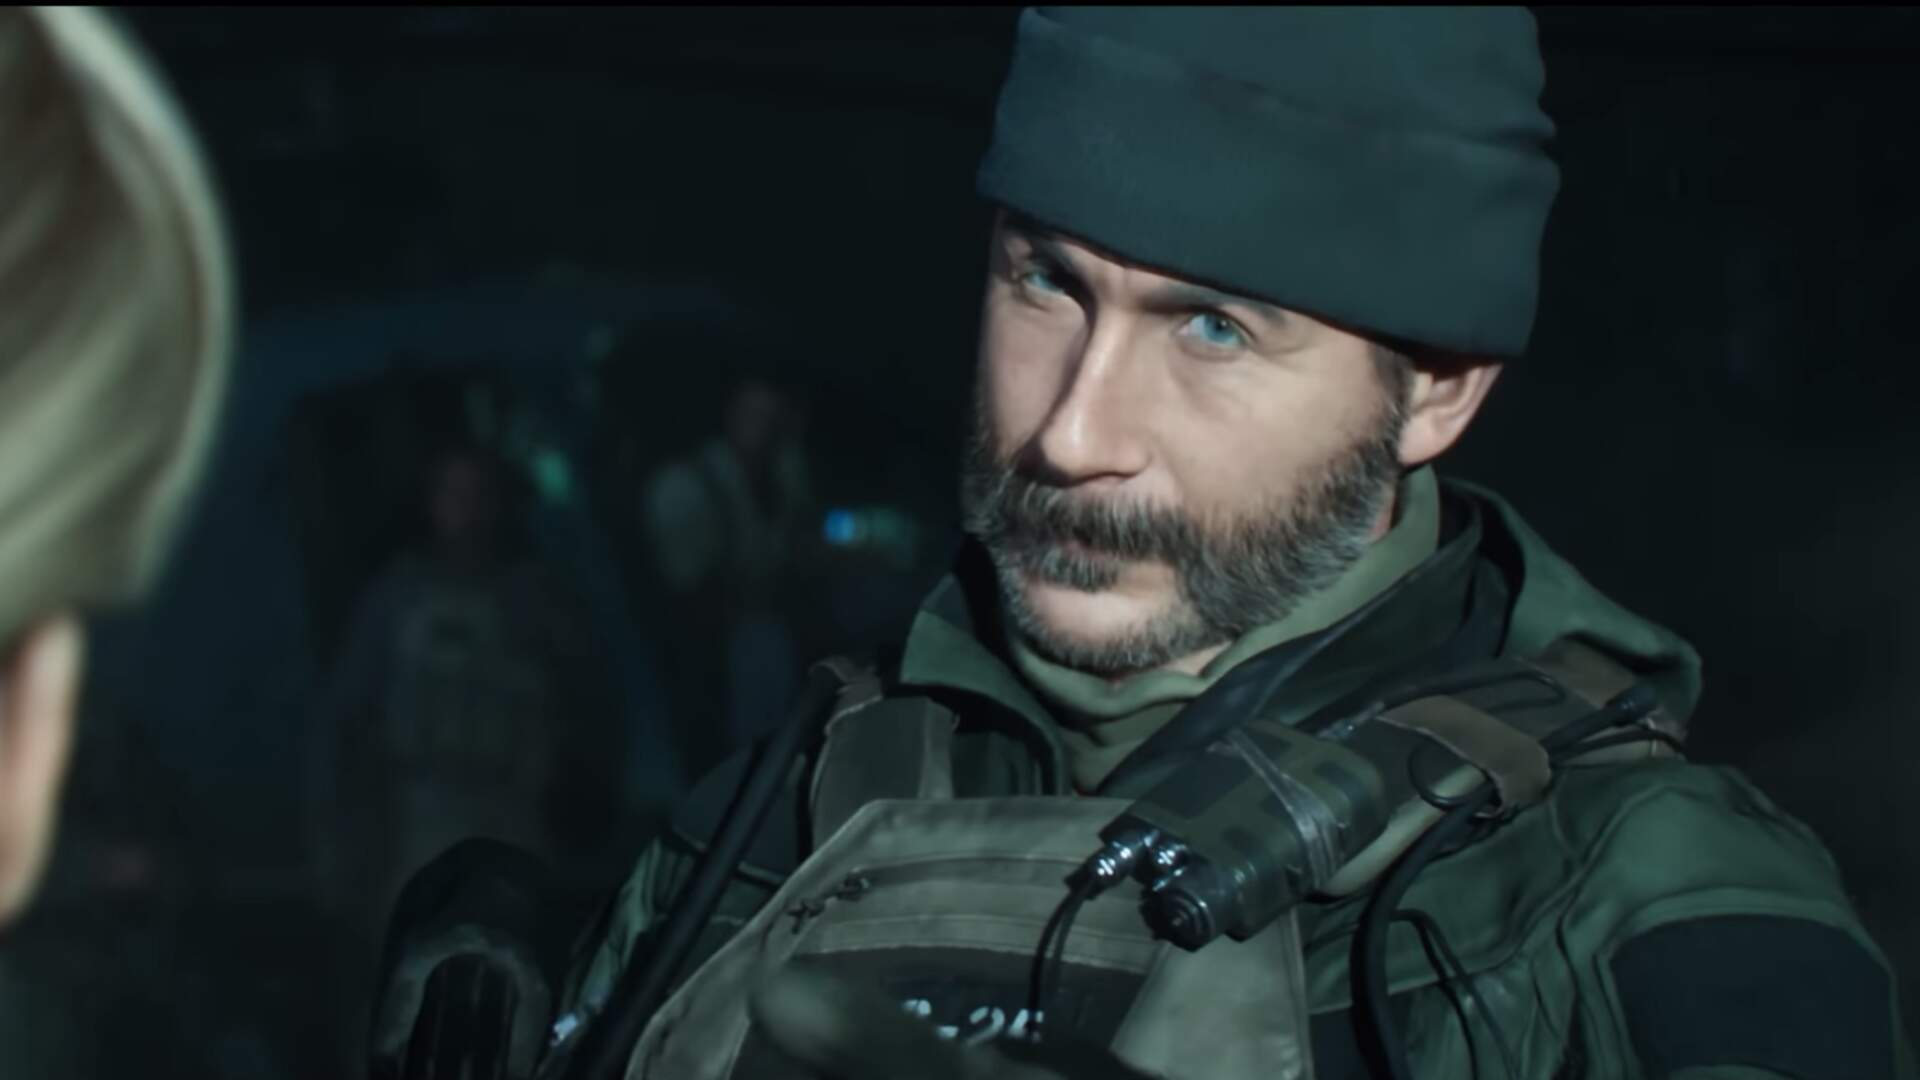 Call of Duty Modern Warfare (2019) Cast - Meet the Actors Behind the Game